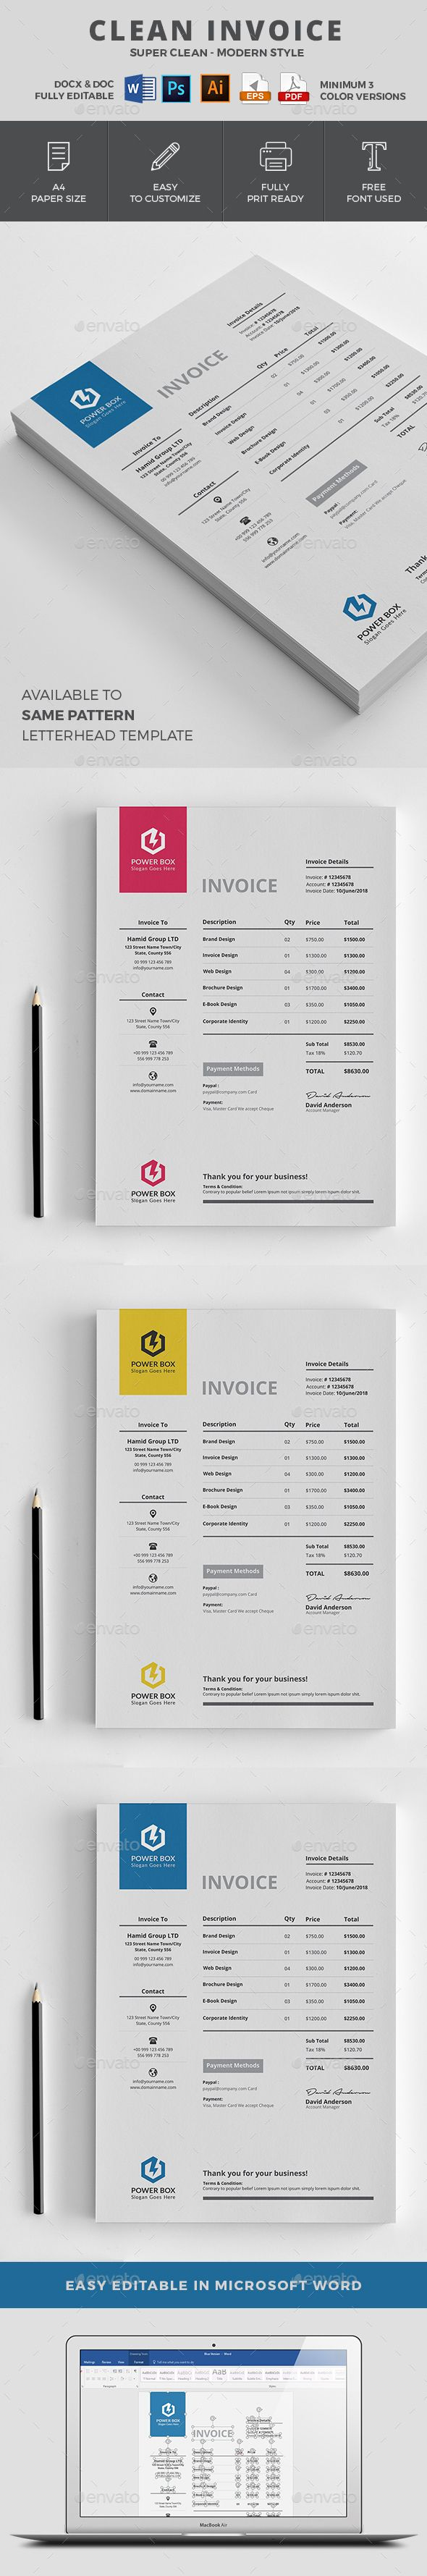 #Invoice - Proposals & Invoices Stationery - Minimal Invoice Template   5 color variations I Available in- MS Word, PSD, Ai, Eps & Pdf Format I Download: https://graphicriver.net/item/invoice/19253887?ref=jpixel55